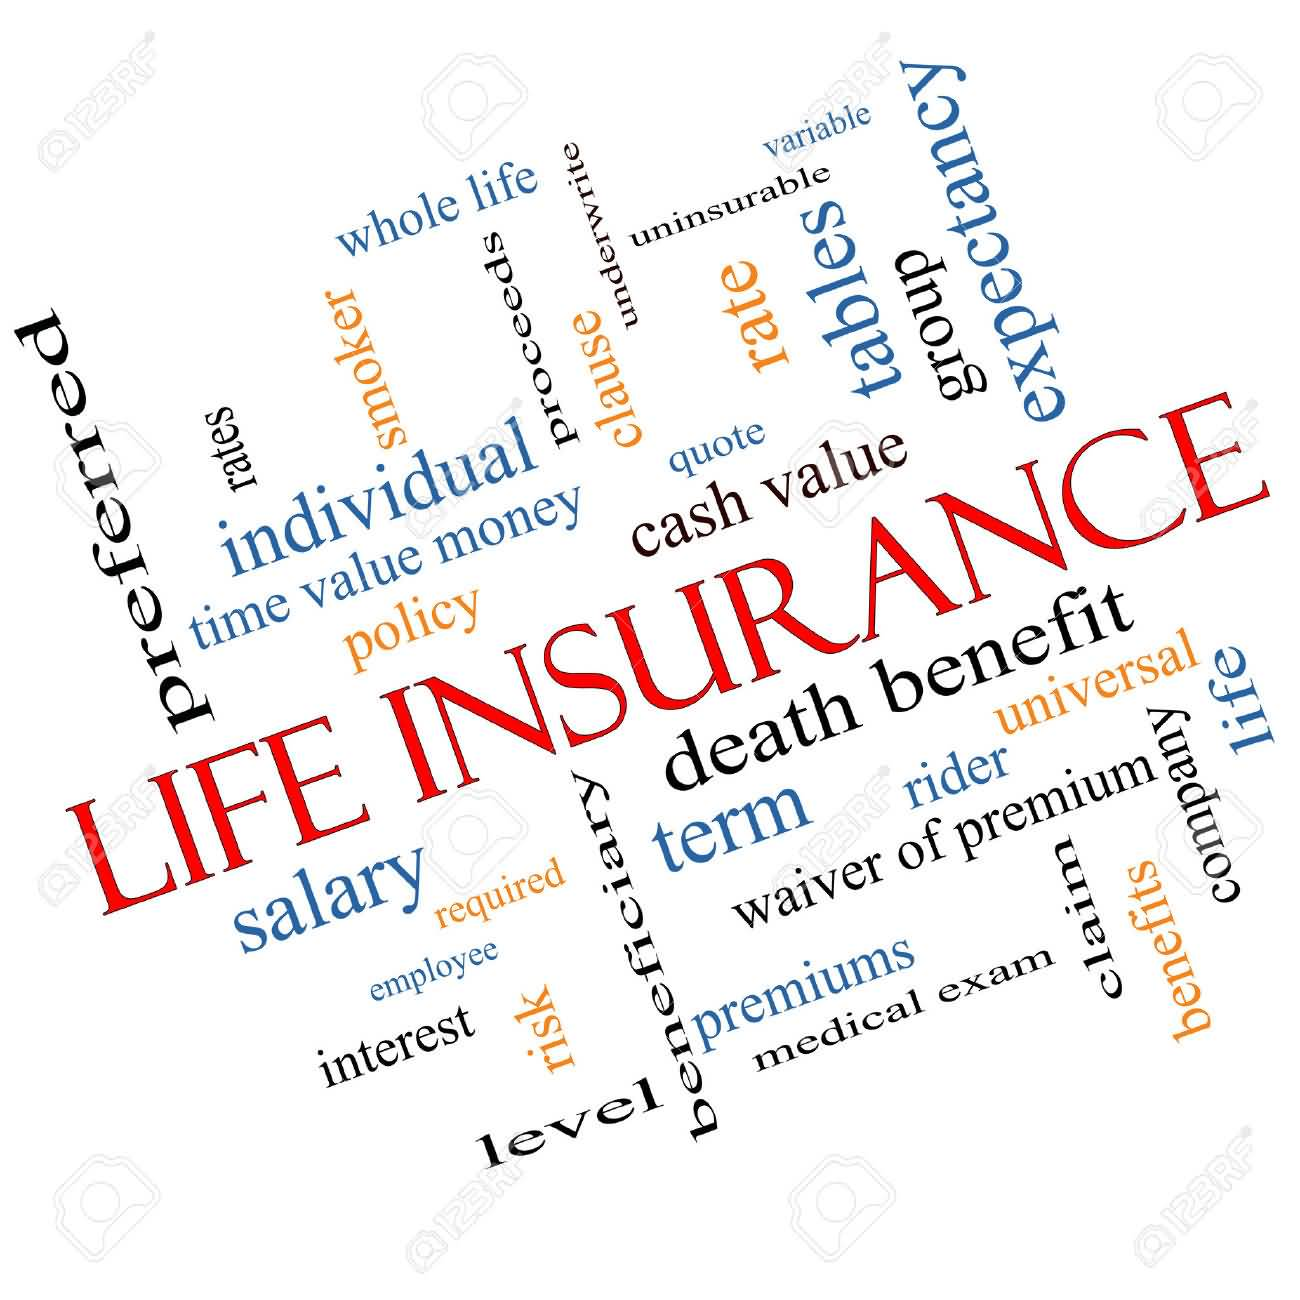 Life Insurance Quotes Whole Life 20 Quote Whole Life Insurance Images And Pictures  Quotesbae